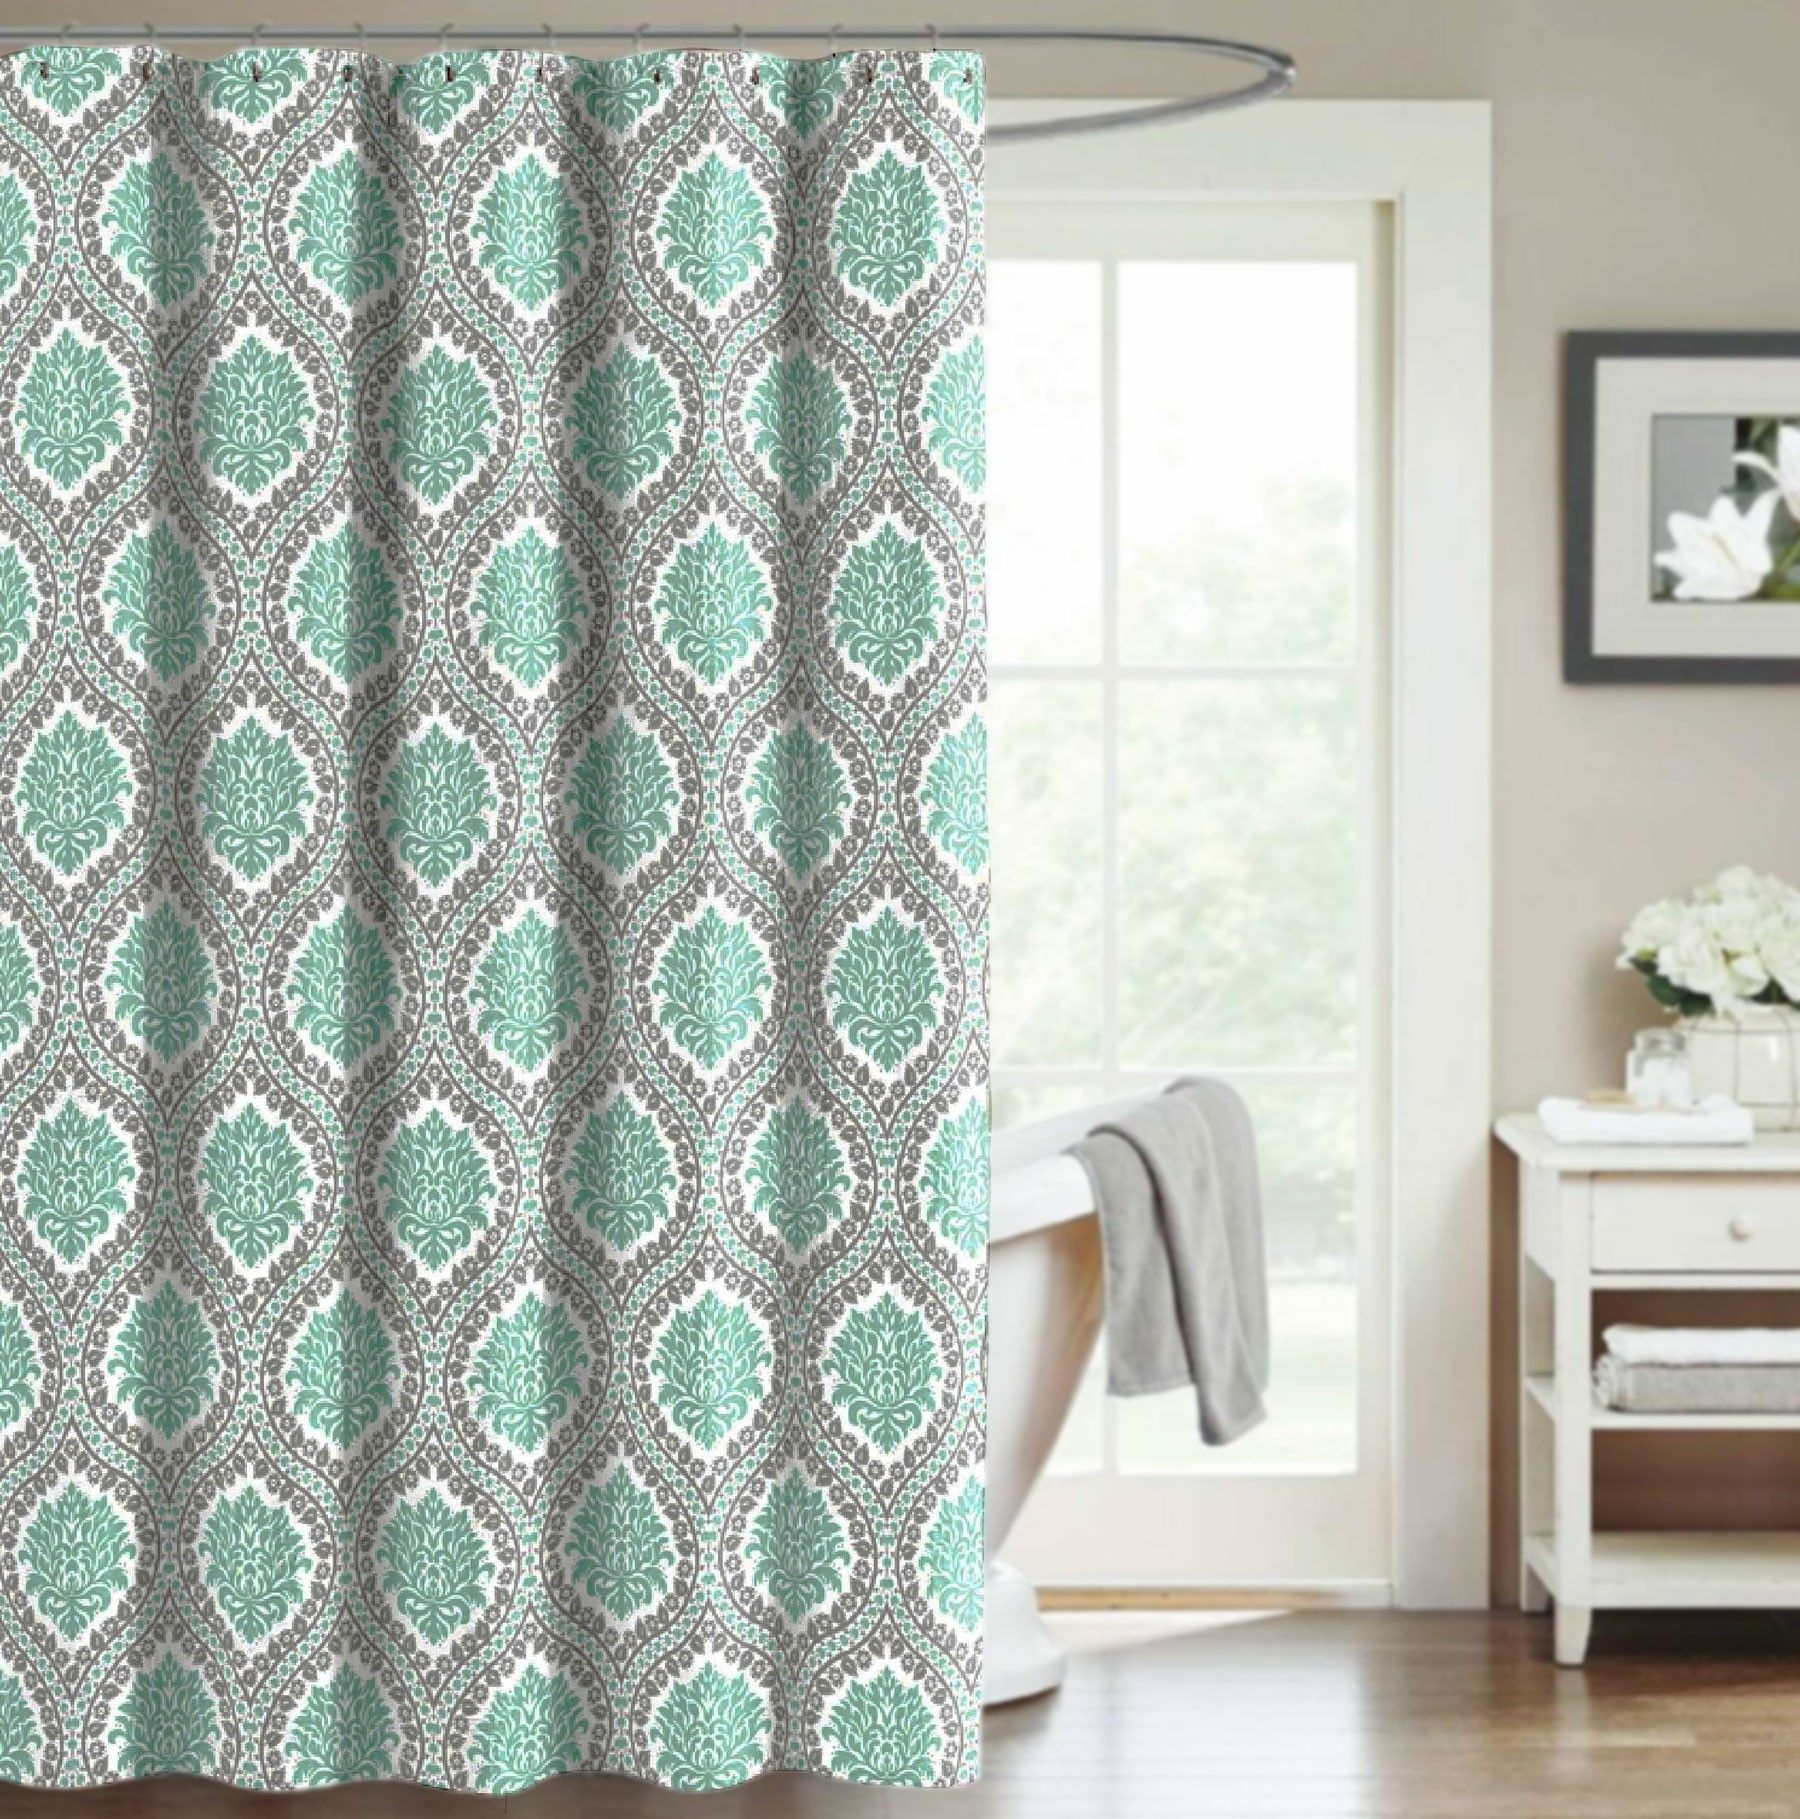 Crest Home Bellavista Fabric Shower Curtain Teal Gray Medallion Damask U2013  Shower Curtains U2013 Bed U0026 Bath